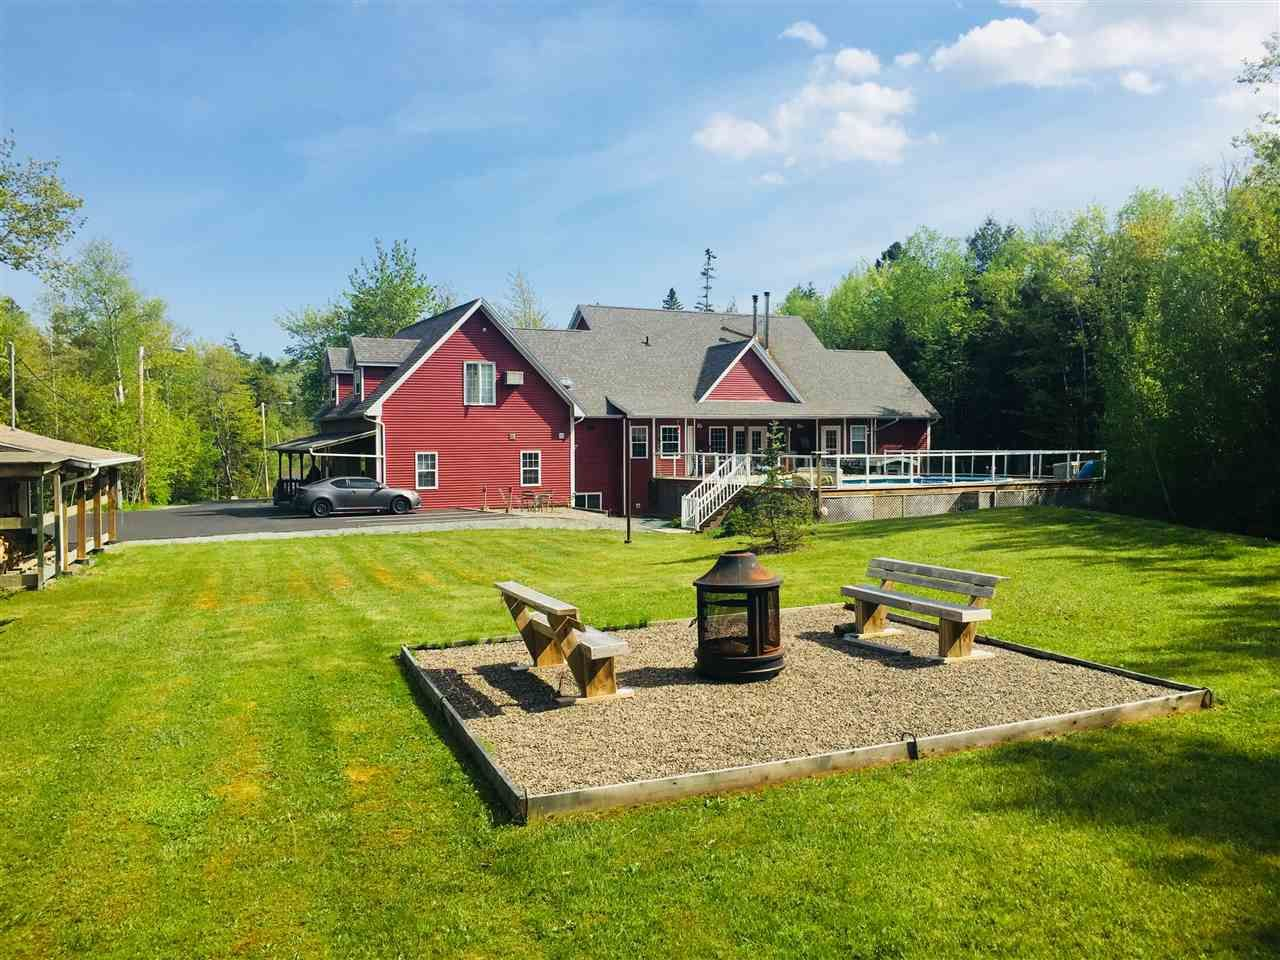 Photo 4: Photos: 6177 Highway 2 in Oakfield: 30-Waverley, Fall River, Oakfield Residential for sale (Halifax-Dartmouth)  : MLS®# 202025905